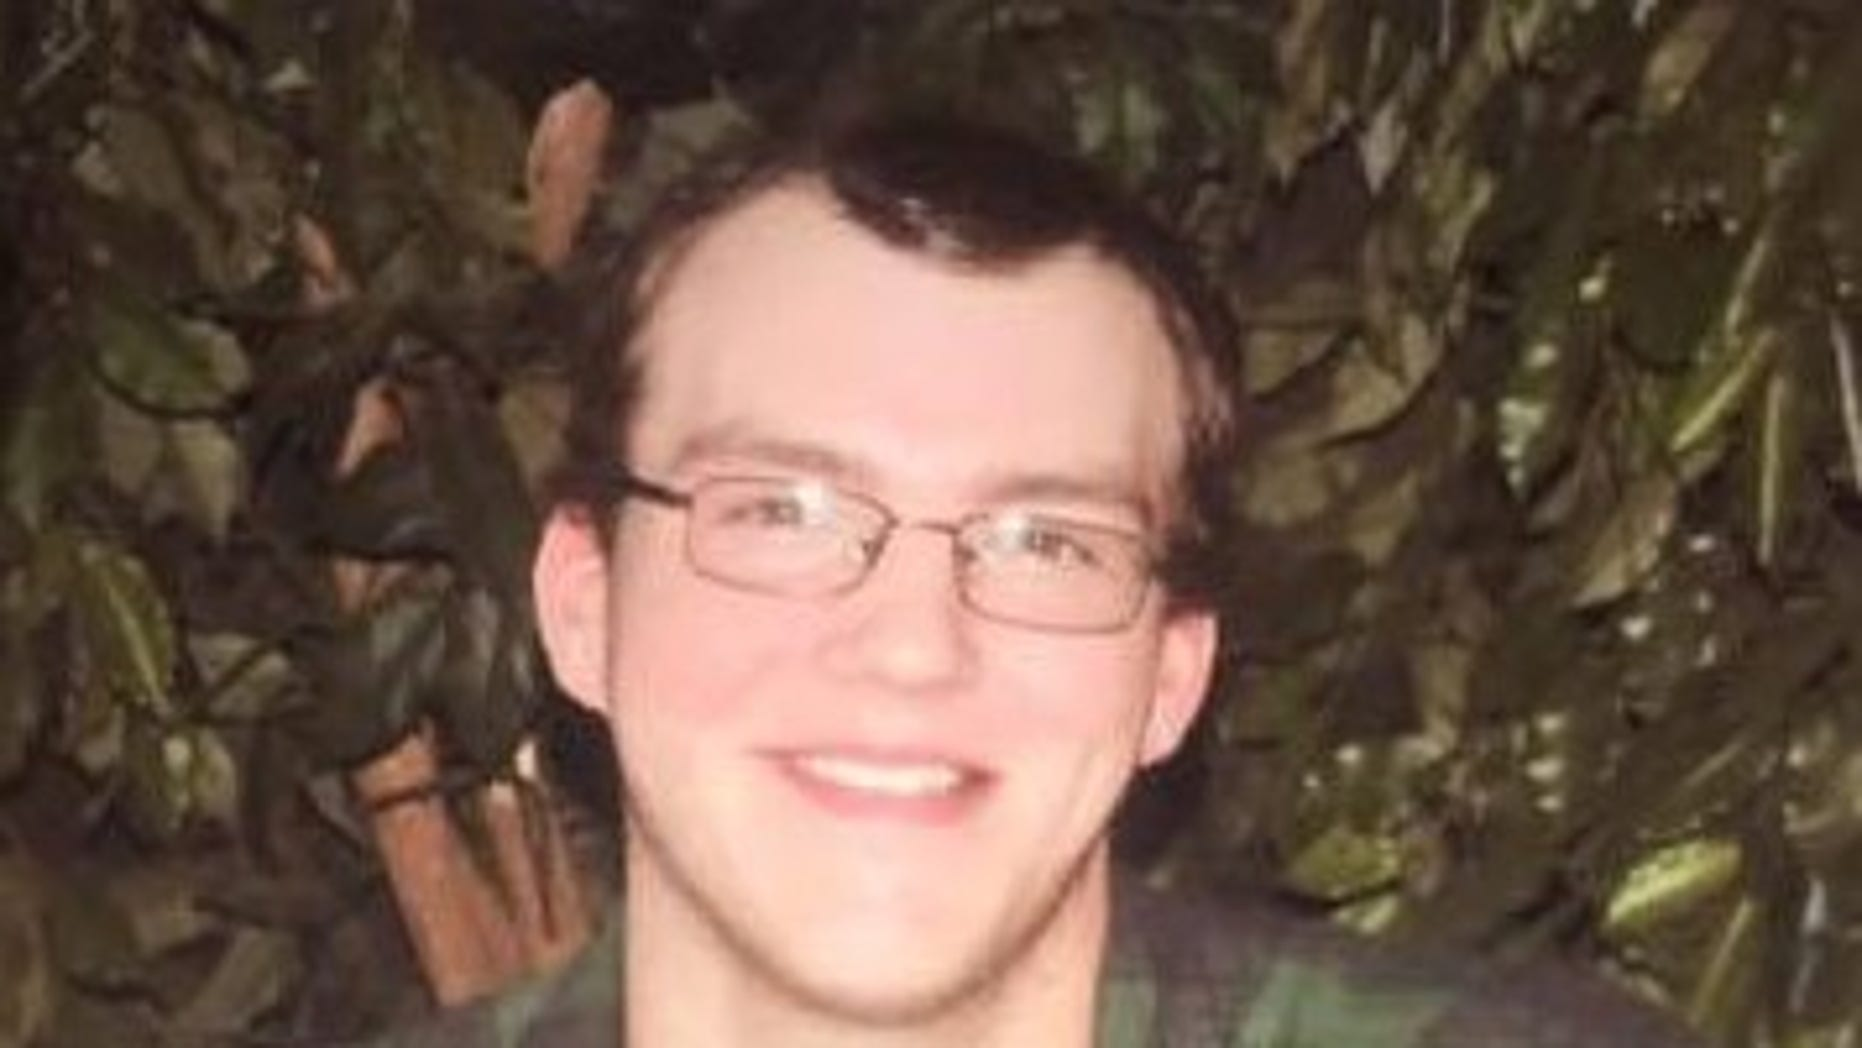 Church usher Robert Engle, 22, is being called a hero after he stopped a gunman at the Burnette Chapel Church of Christ in Antioch, Tennessee on Sunday.